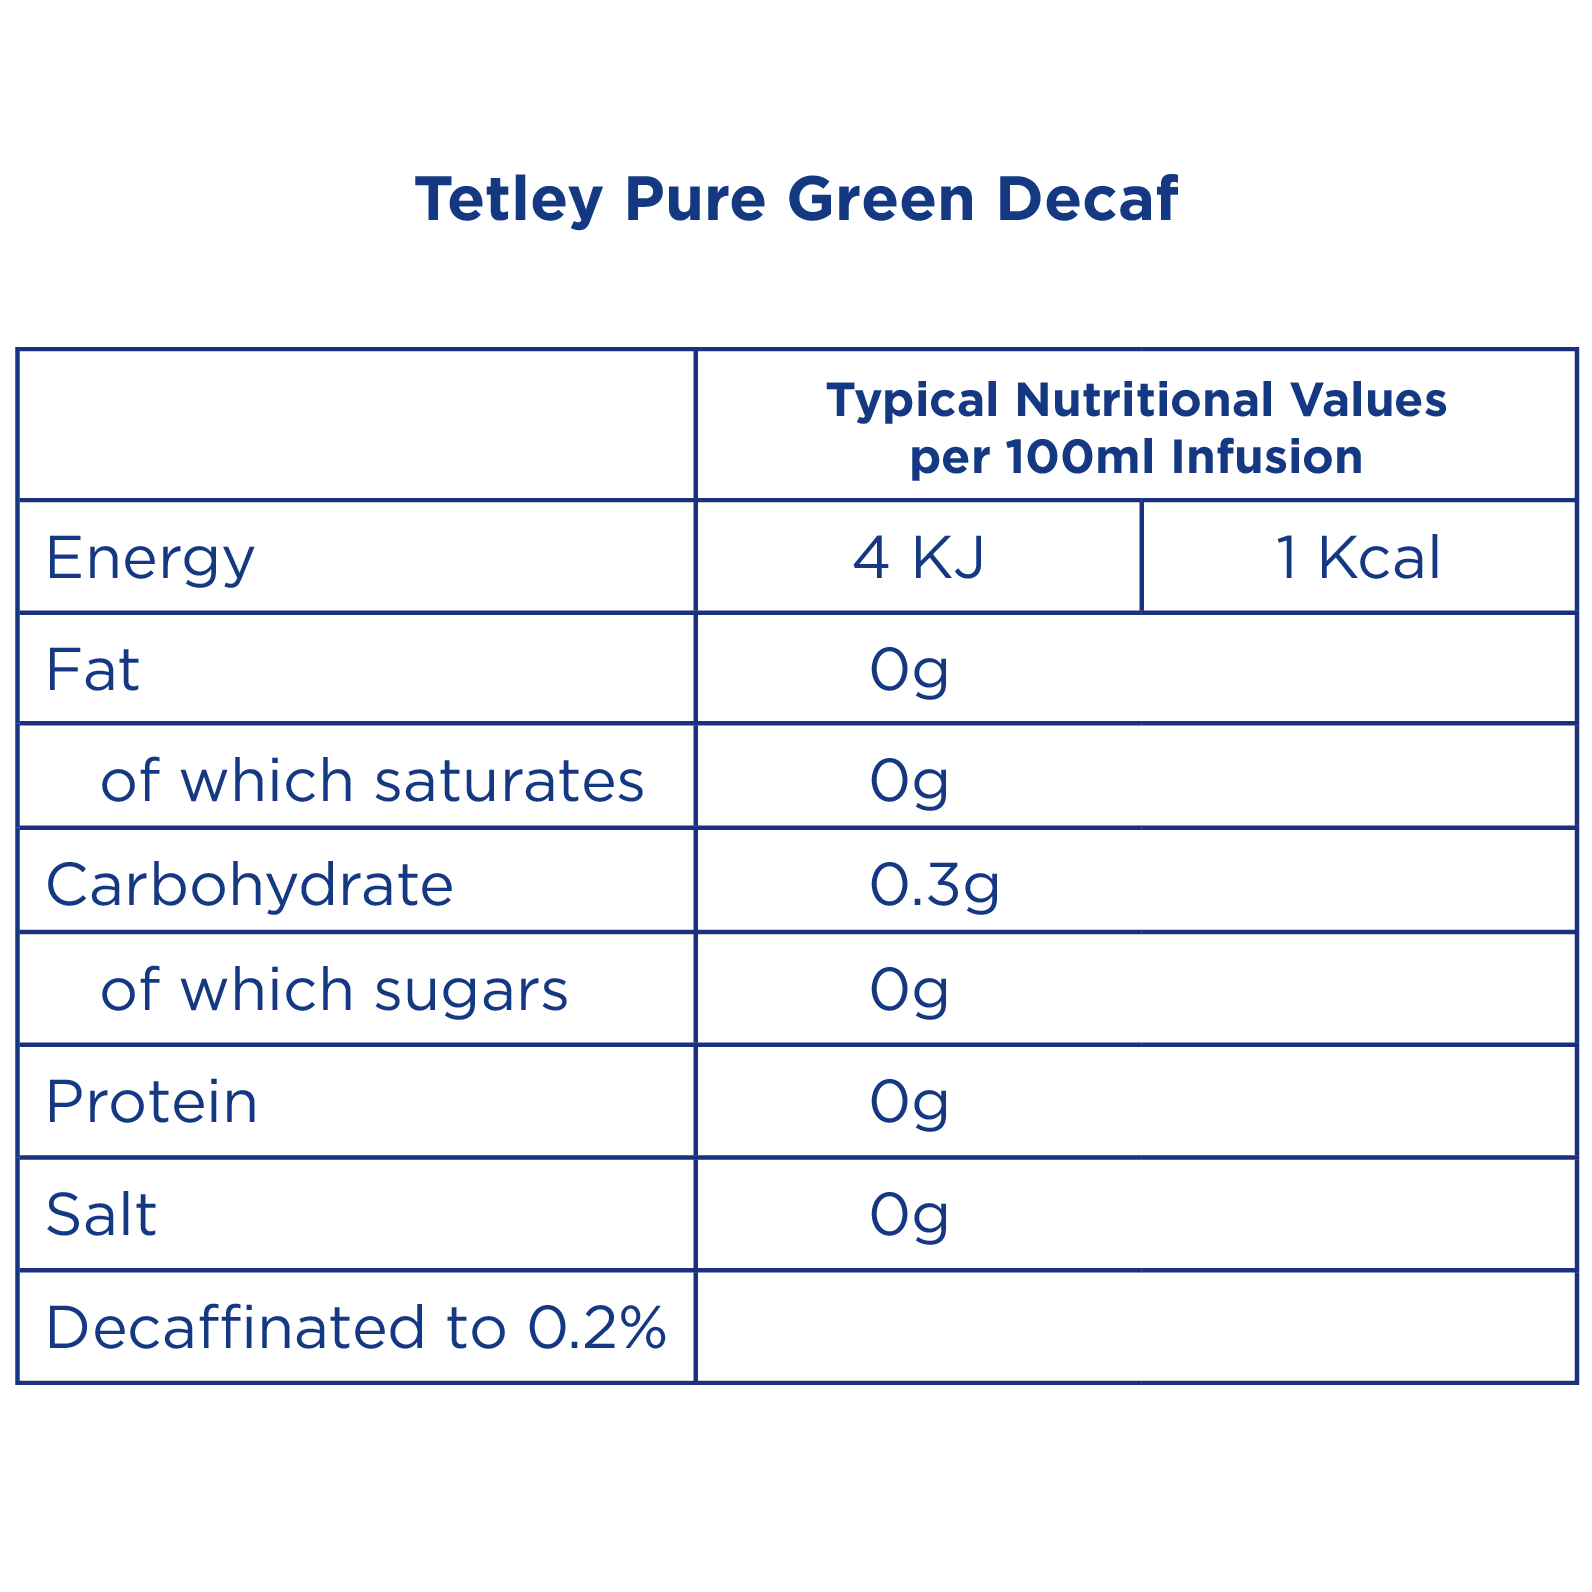 Green decaf